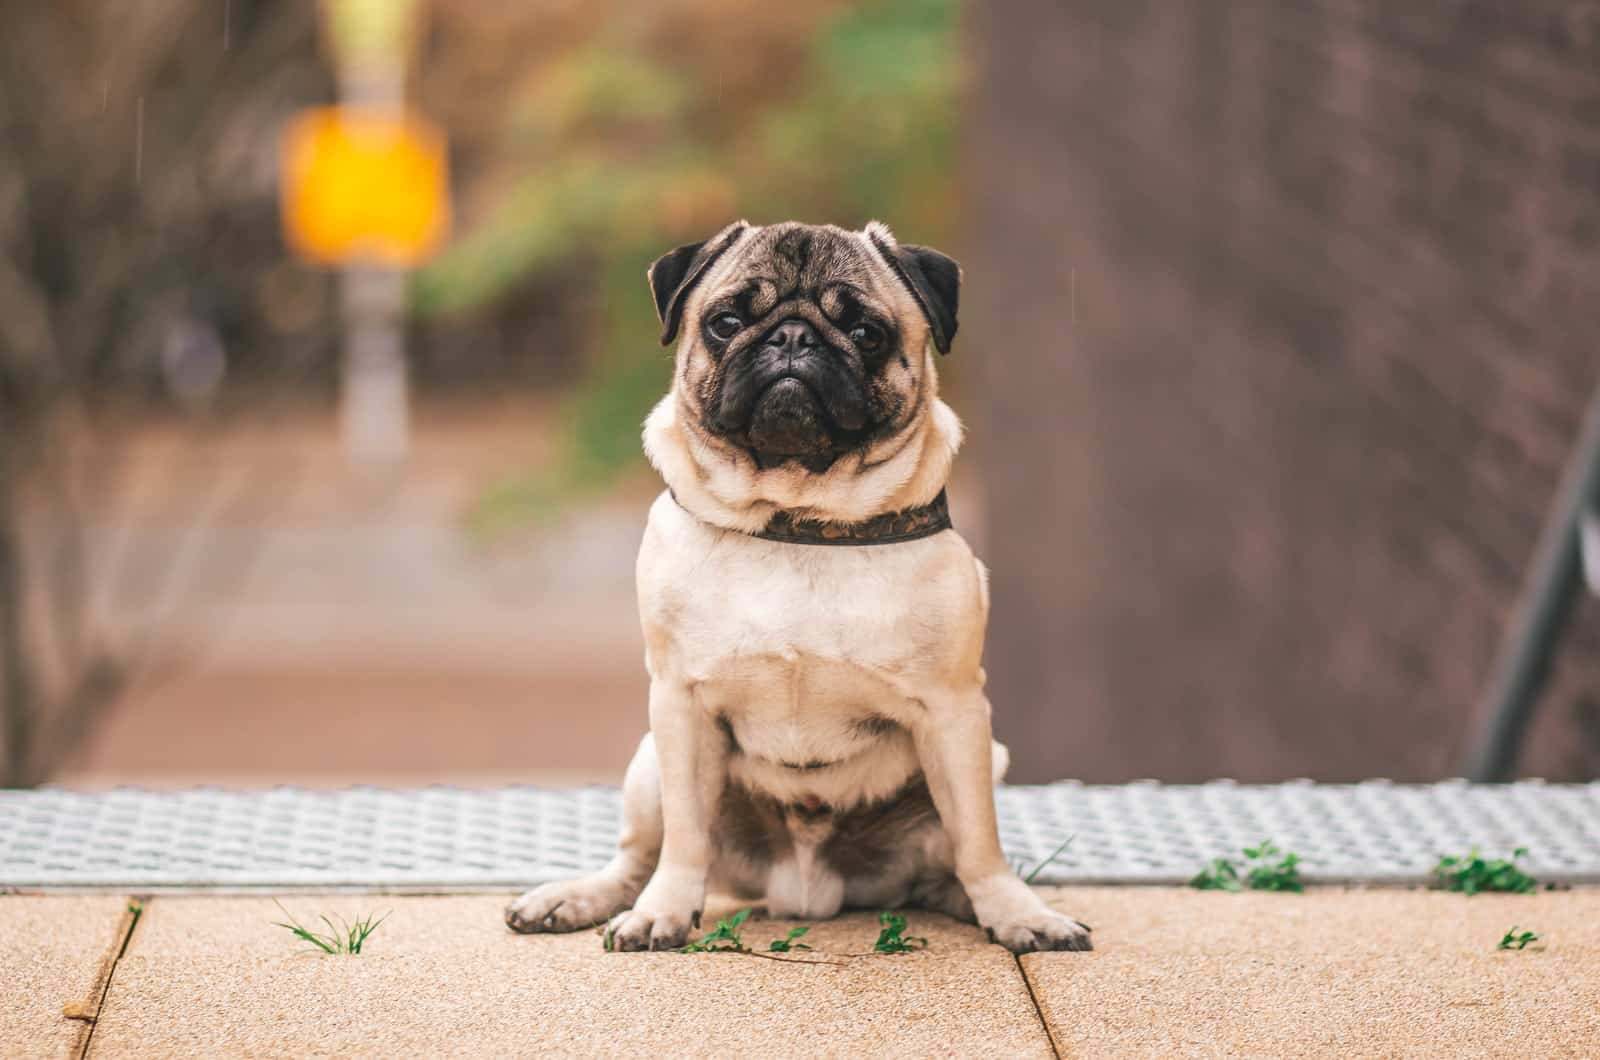 fawn pug photographed on the street